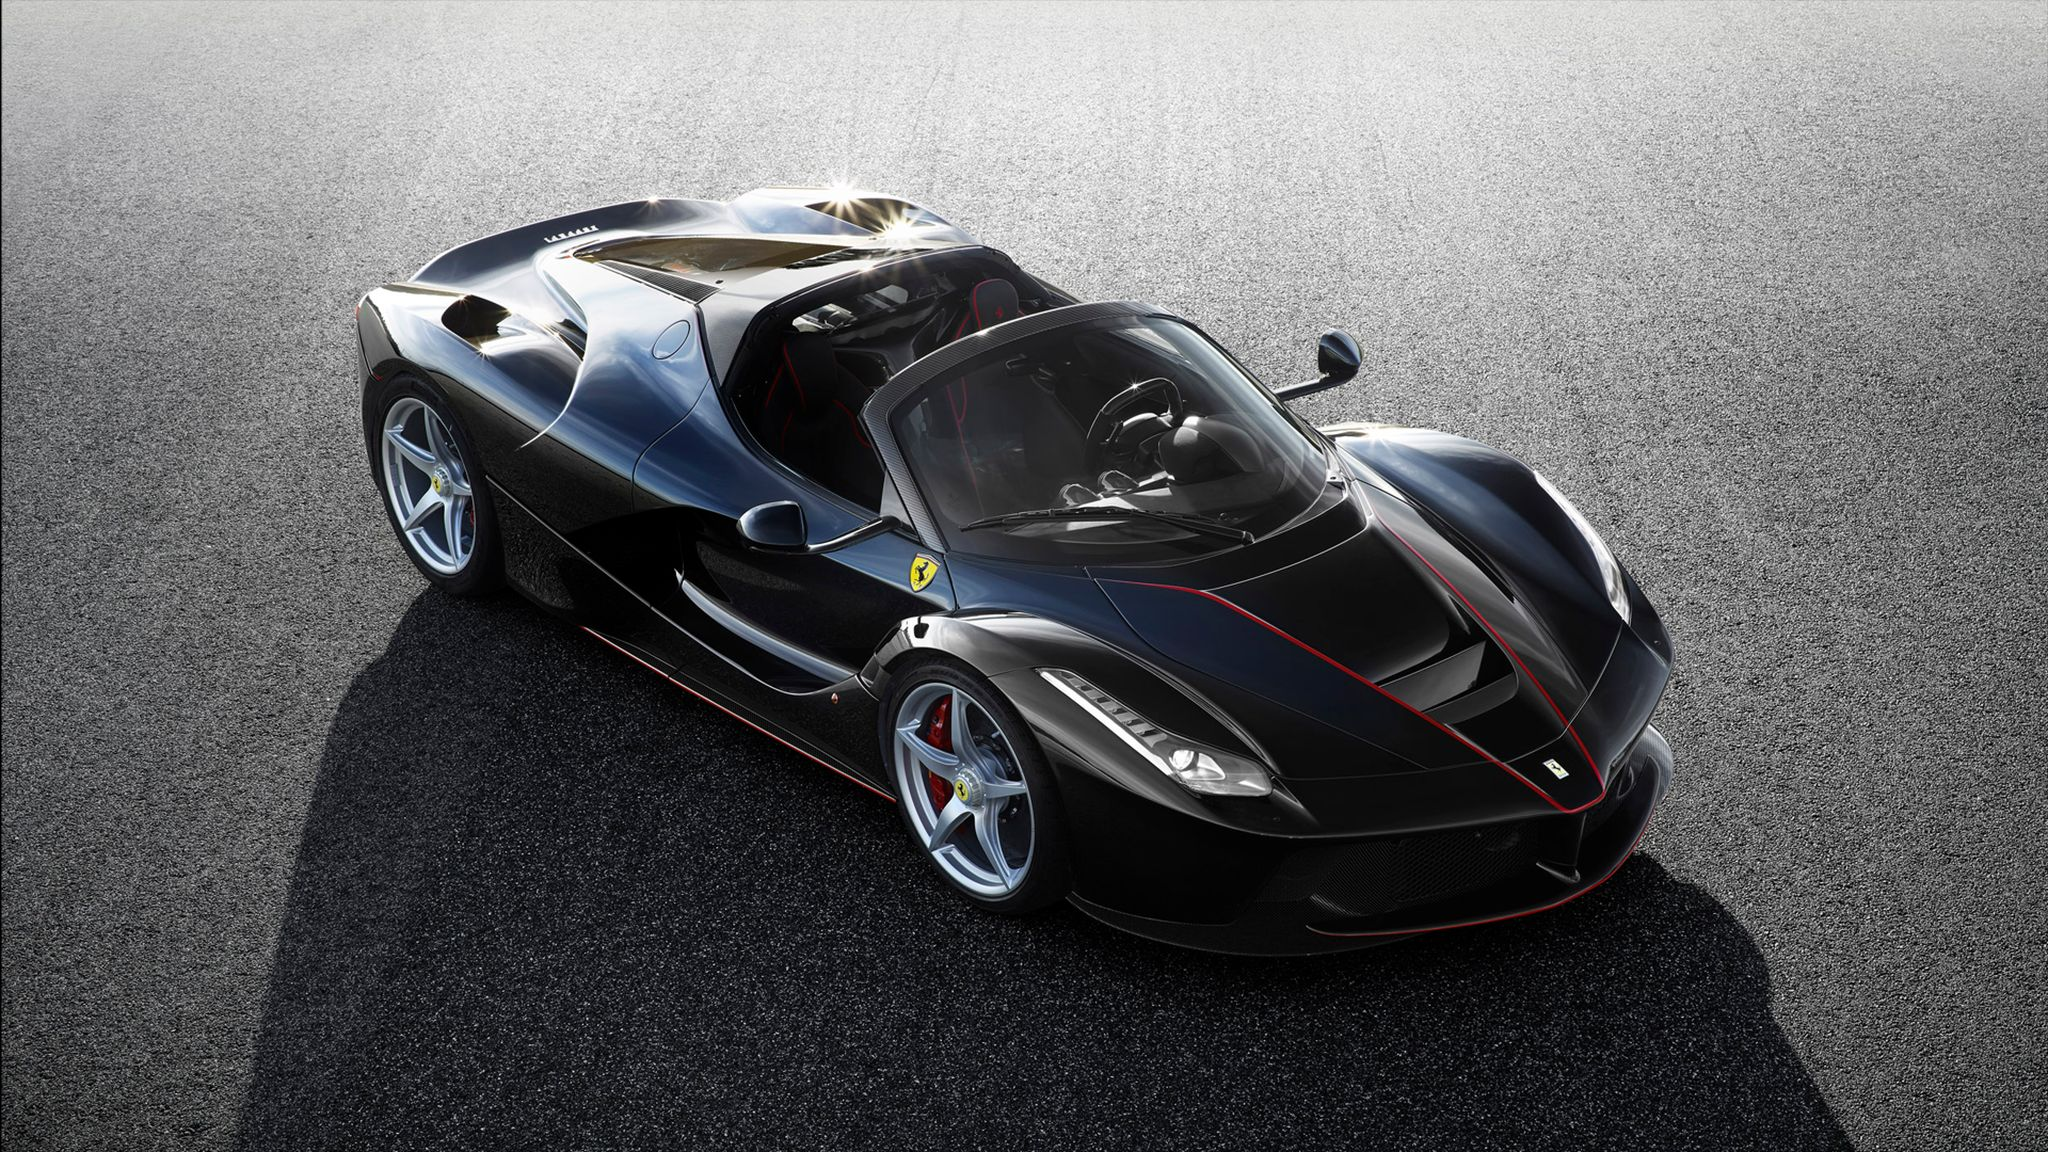 2016 - LaFerrari Spider First Official Photos